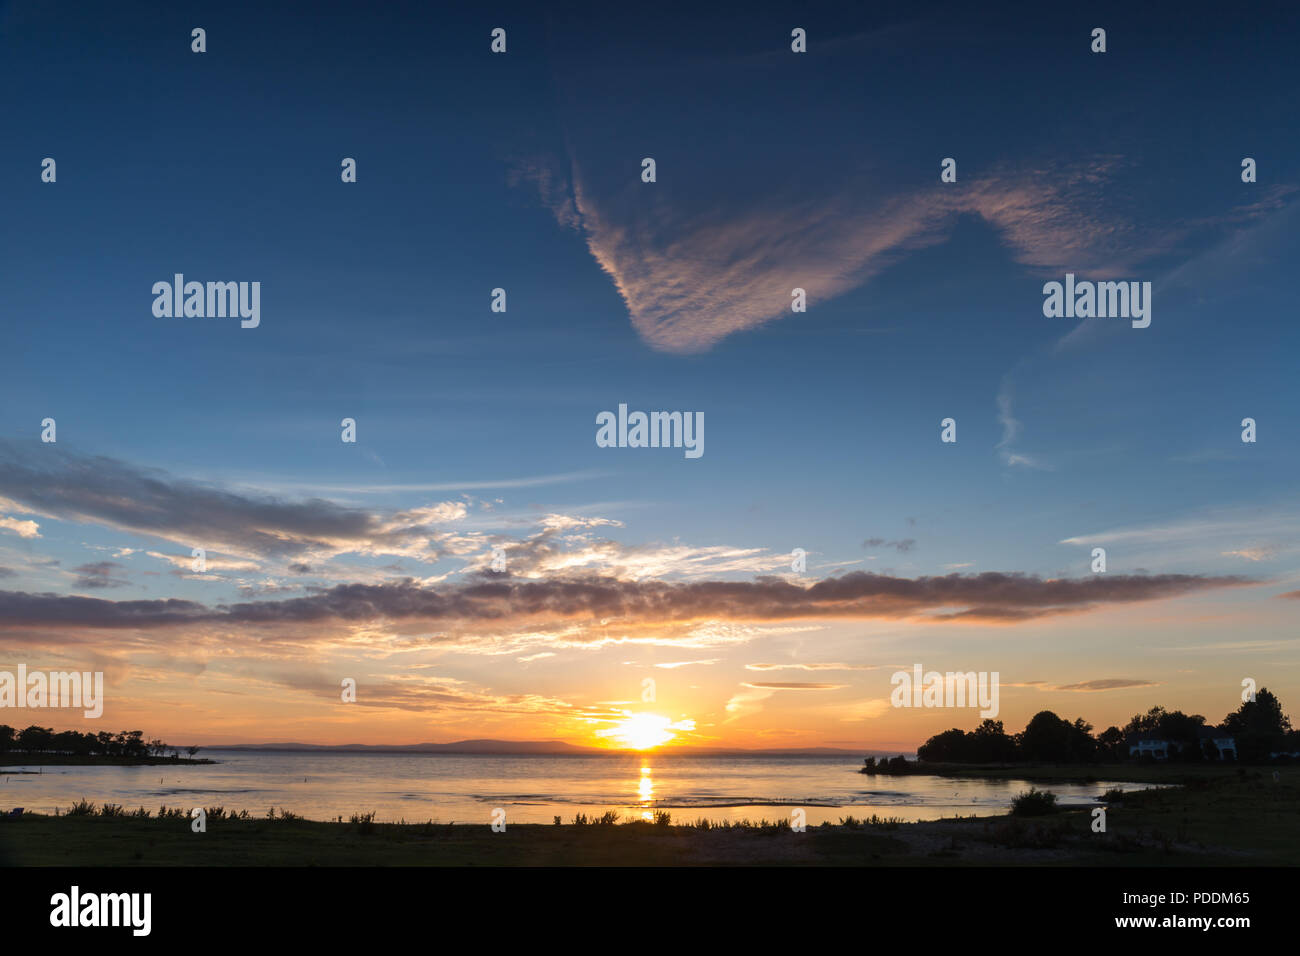 An expansive  beautiful sunset and skyscape over a lake, Lough Neagh, N.Ireland. - Stock Image